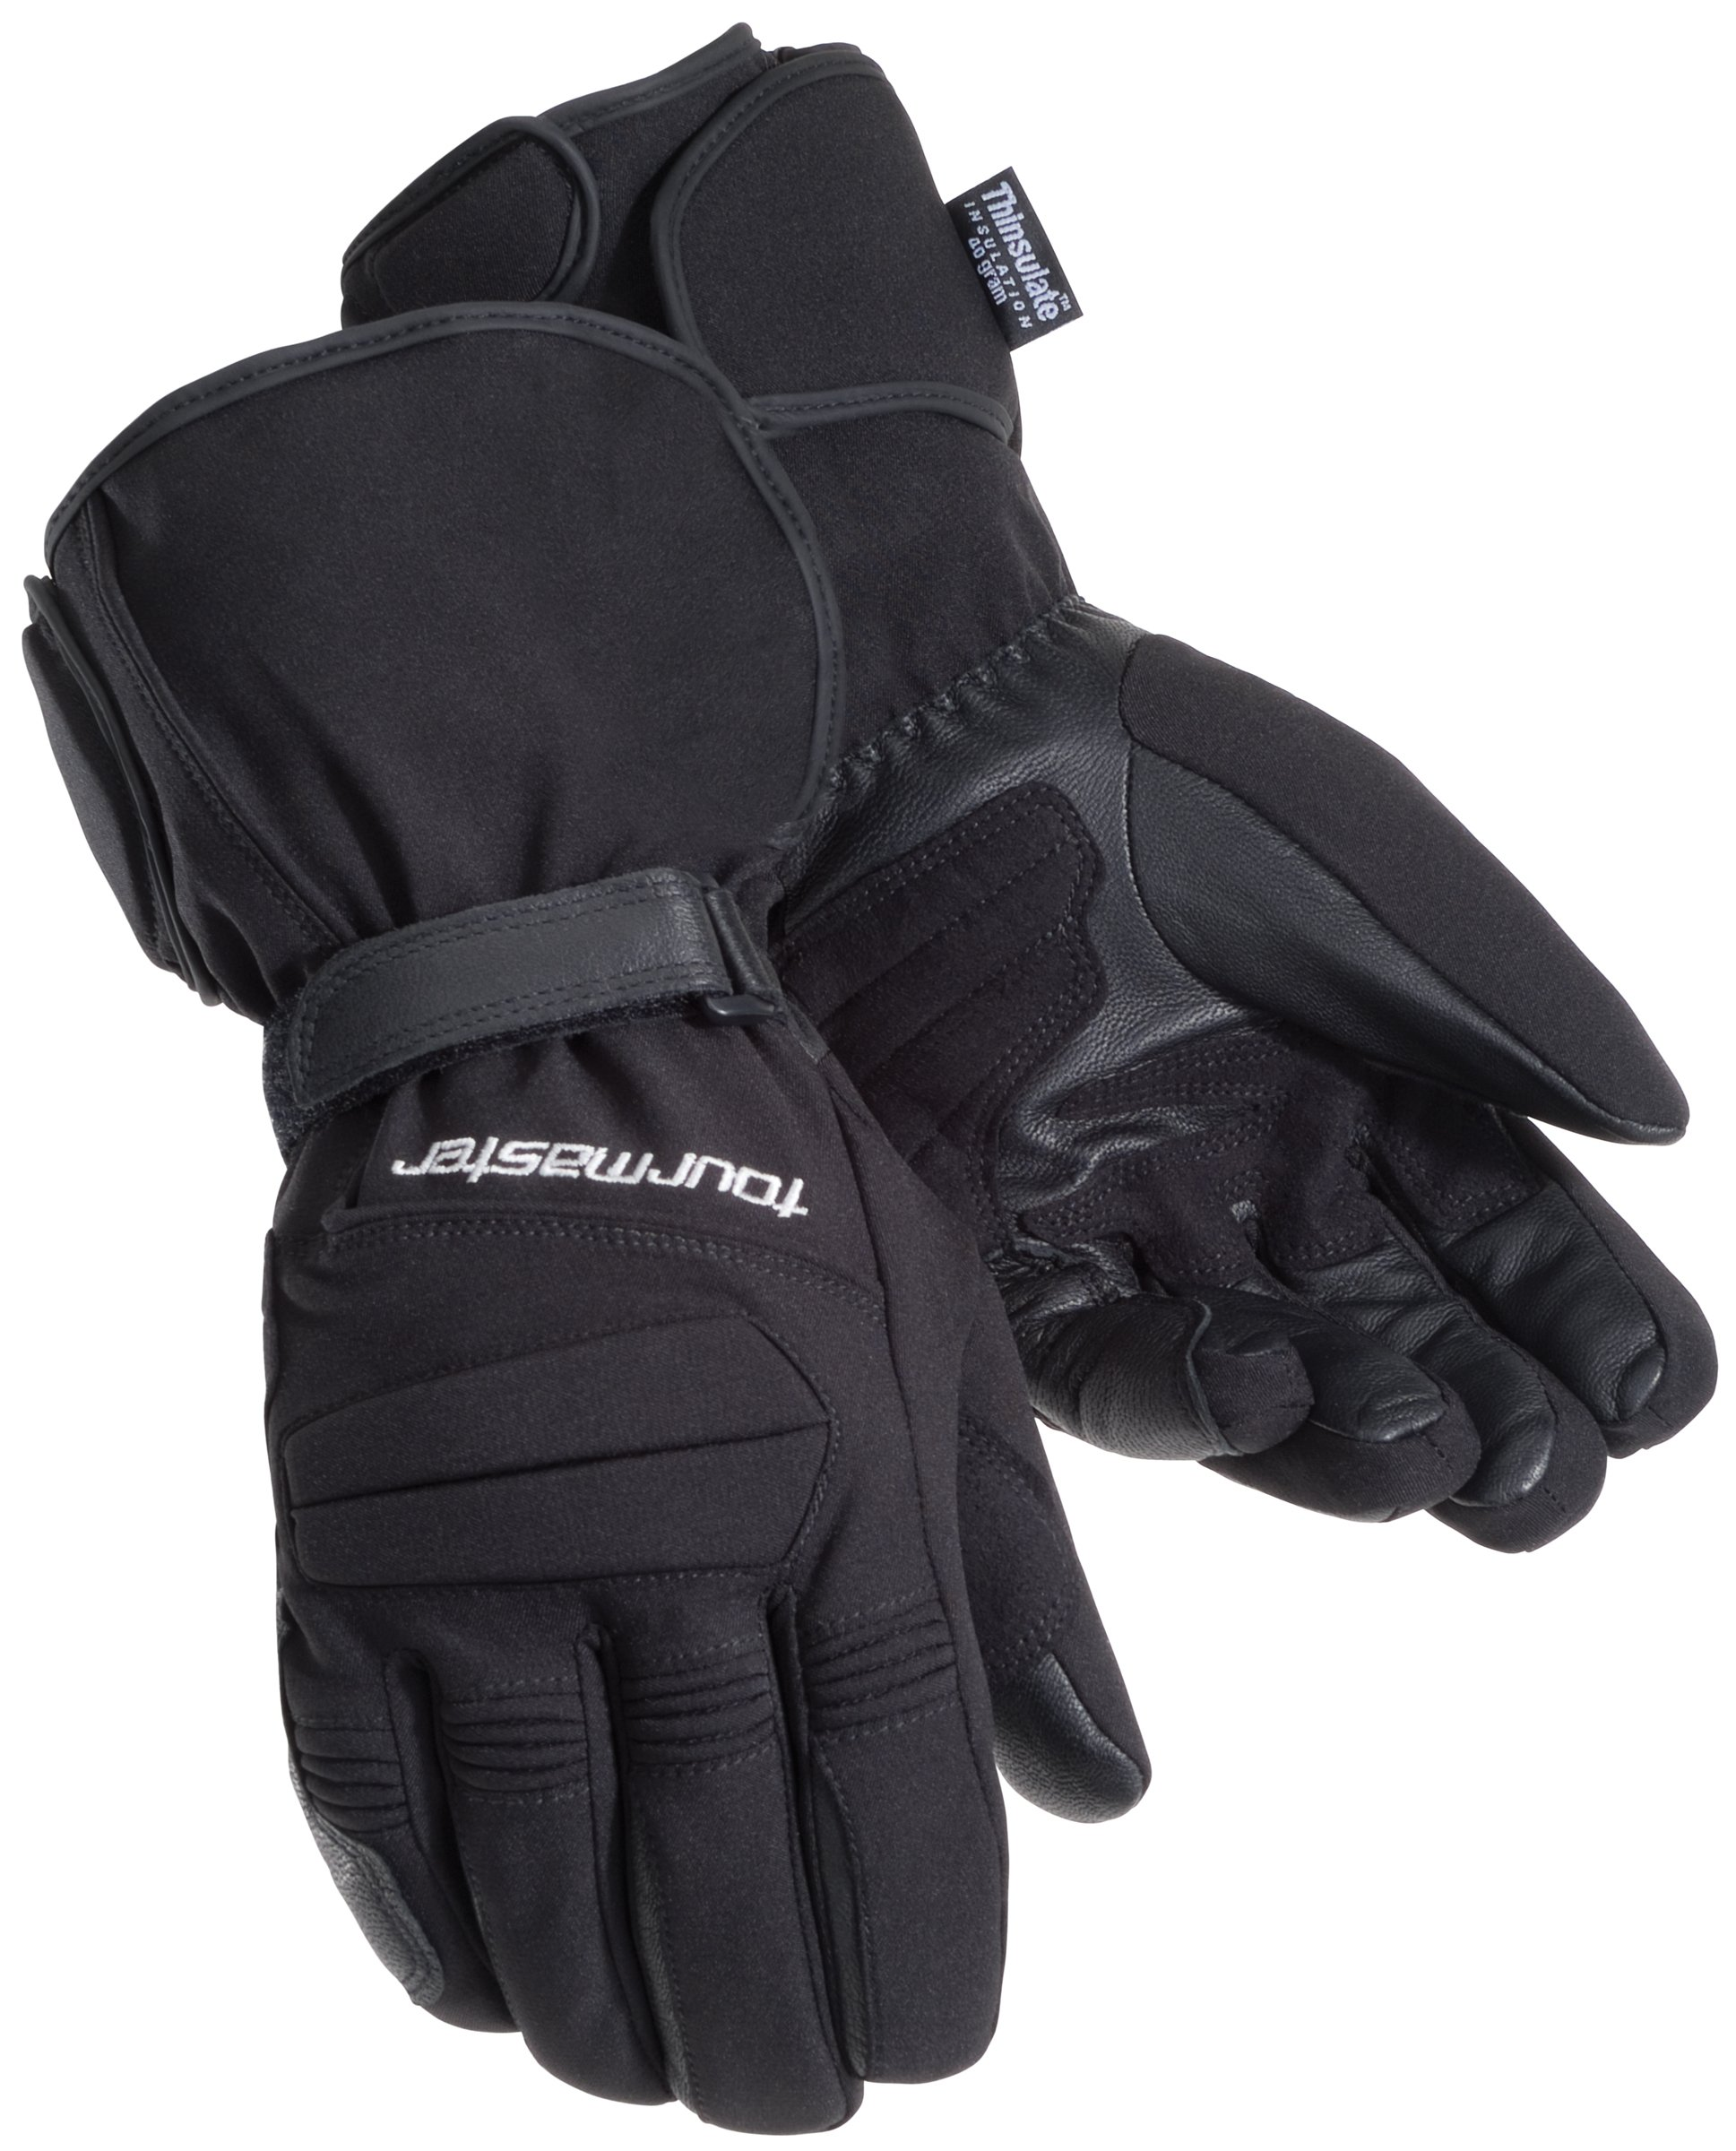 Tour Master Synergy 2.0 Electrically Heated Mens Textile Street Racing Motorcycle Gloves - Black / 2X-Large